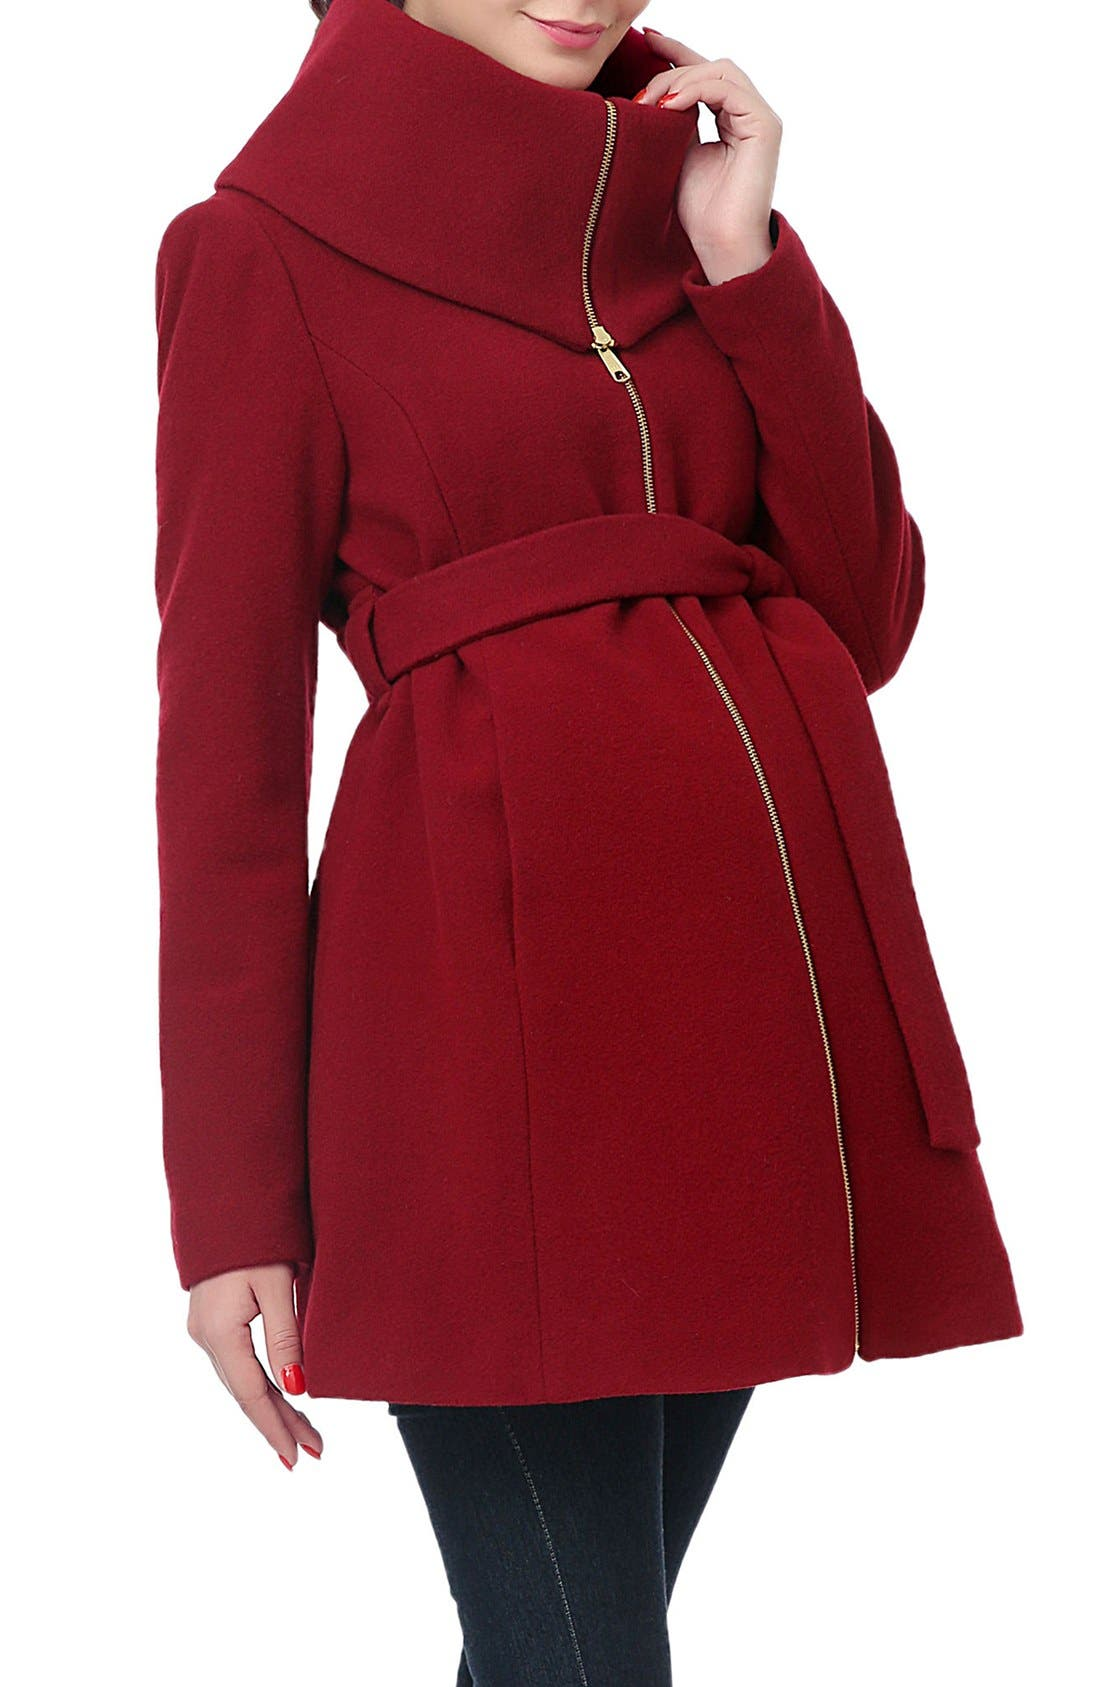 'Mia' High Collar Maternity Coat,                         Main,                         color, Wine